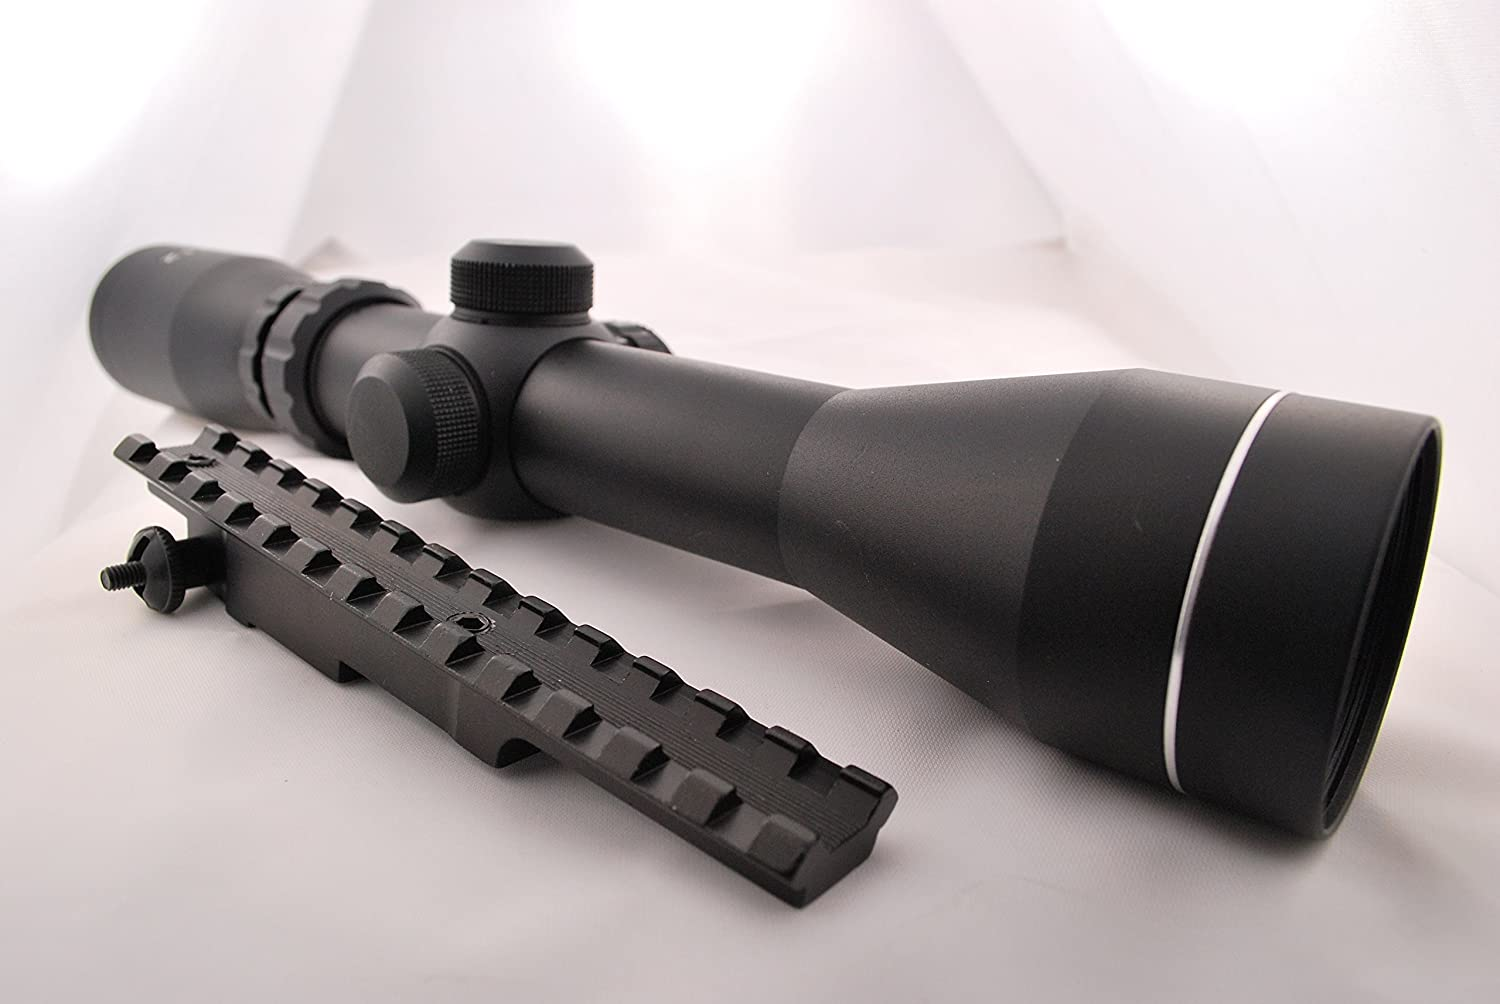 US-DEALS Mauser K98 Scout Rifle Combo Set With 2-7×42 30mm Long Eye Relief Scope Rail Style Mount Rings